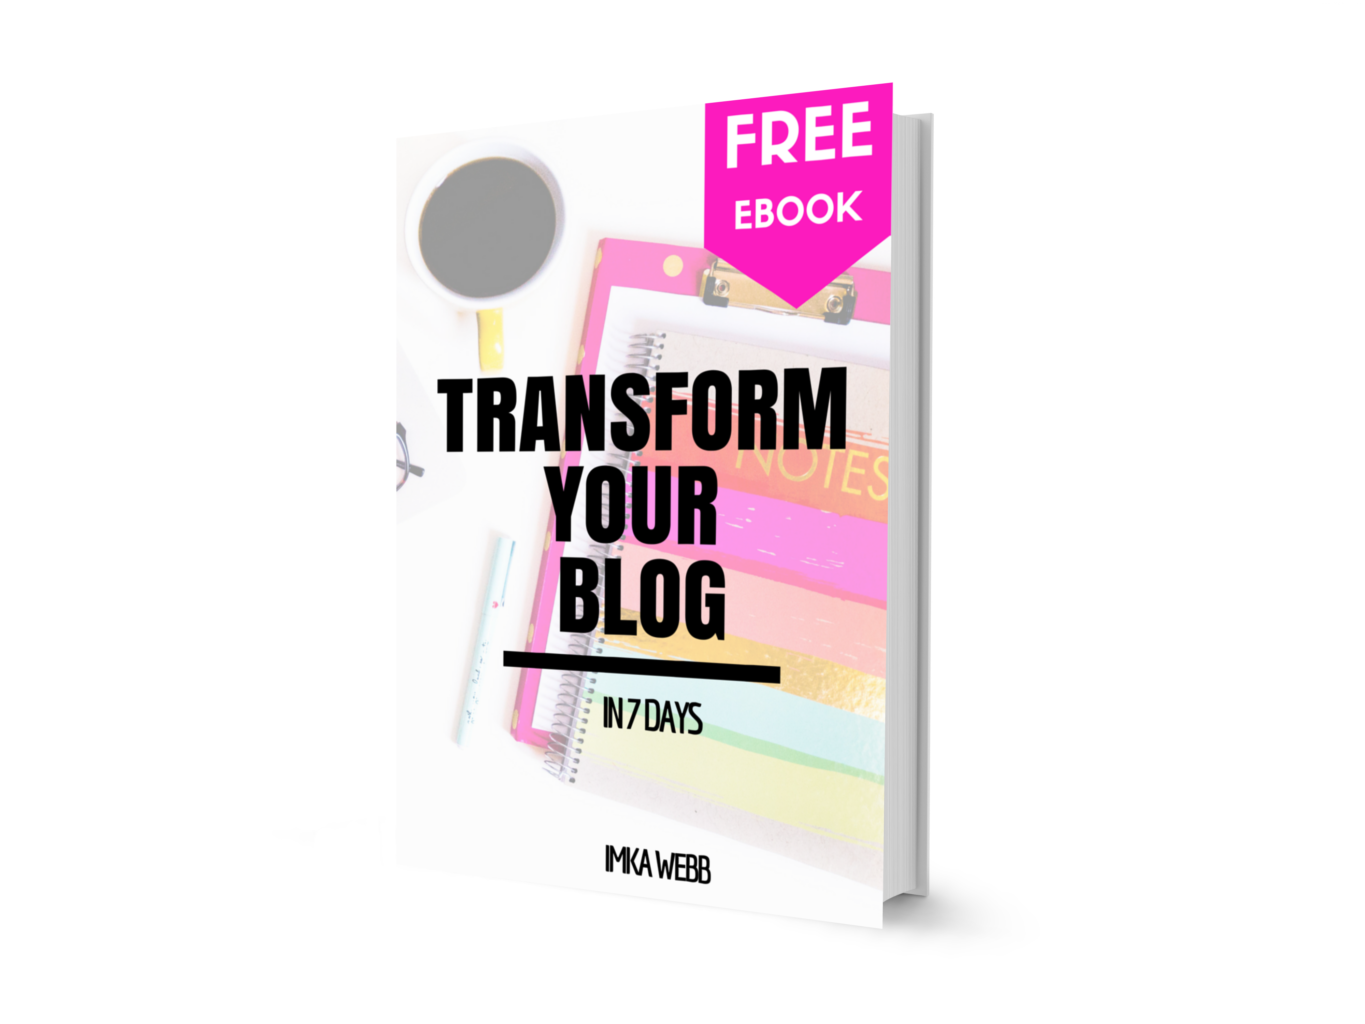 Transform Your Blog in 7 Days